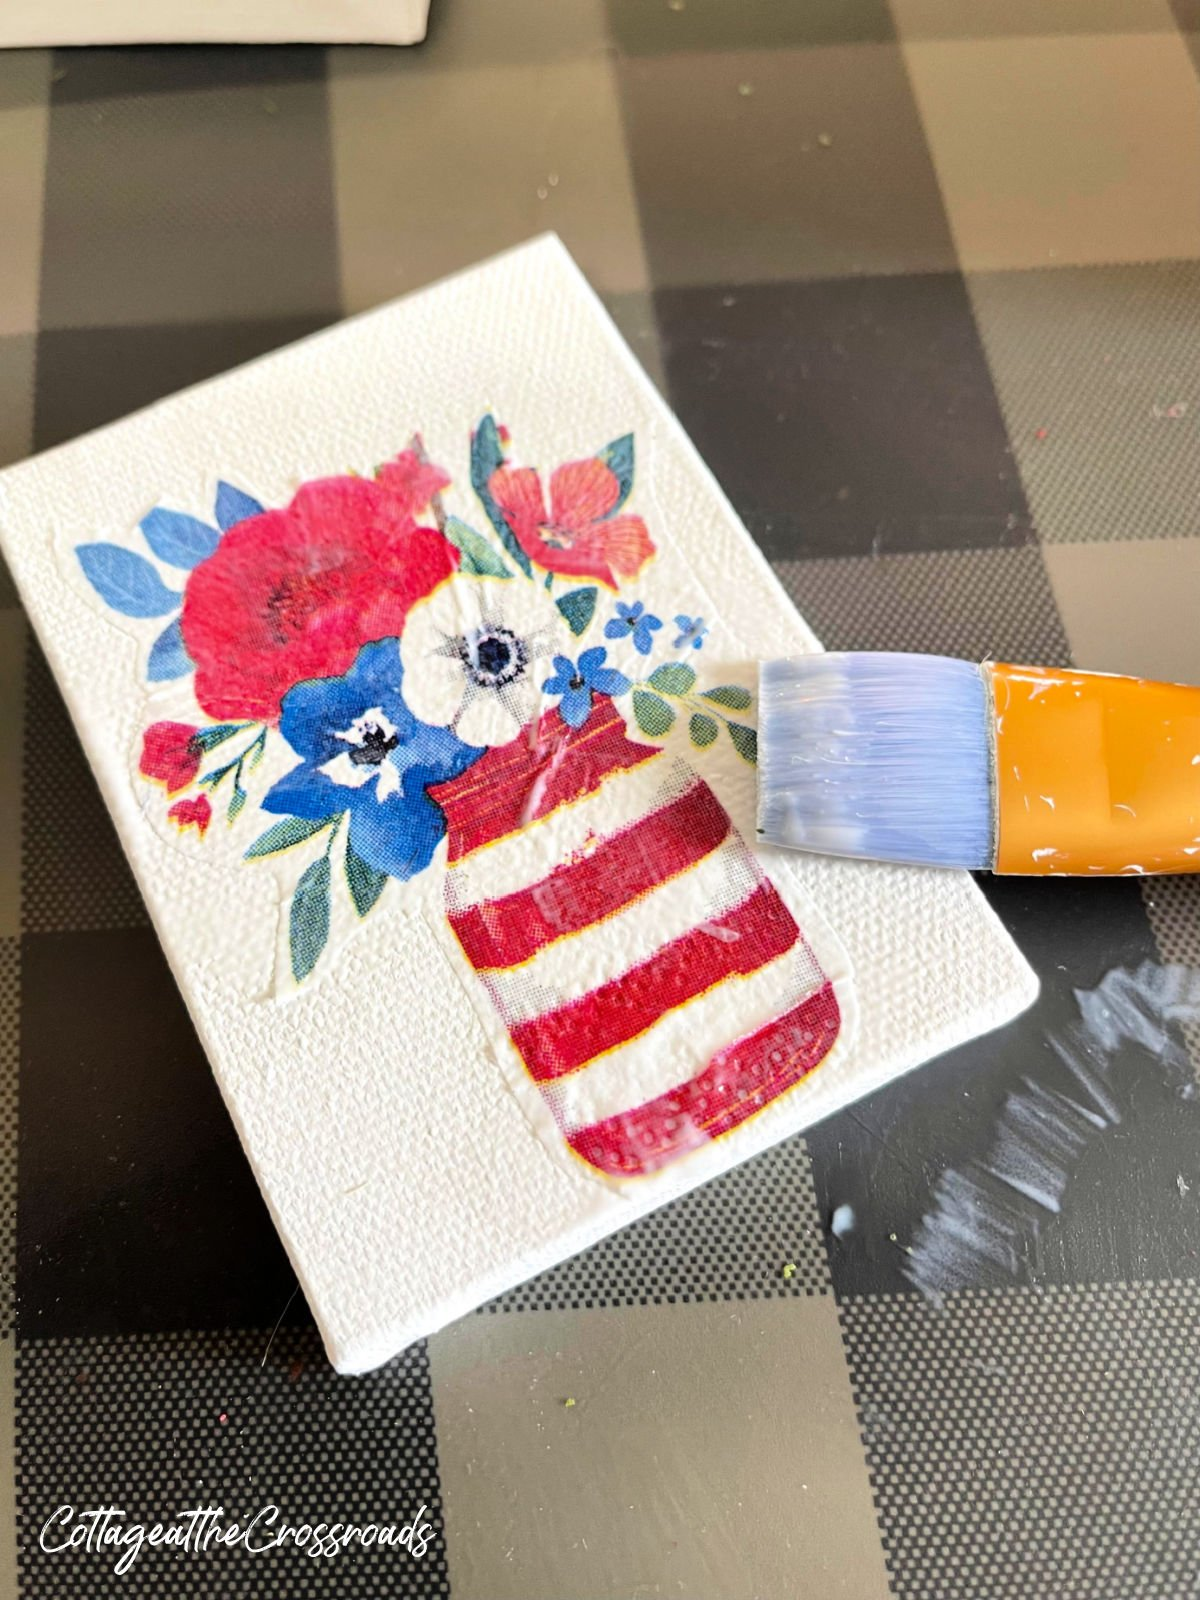 applying Mod Podge onto the front of the cut out napkin design